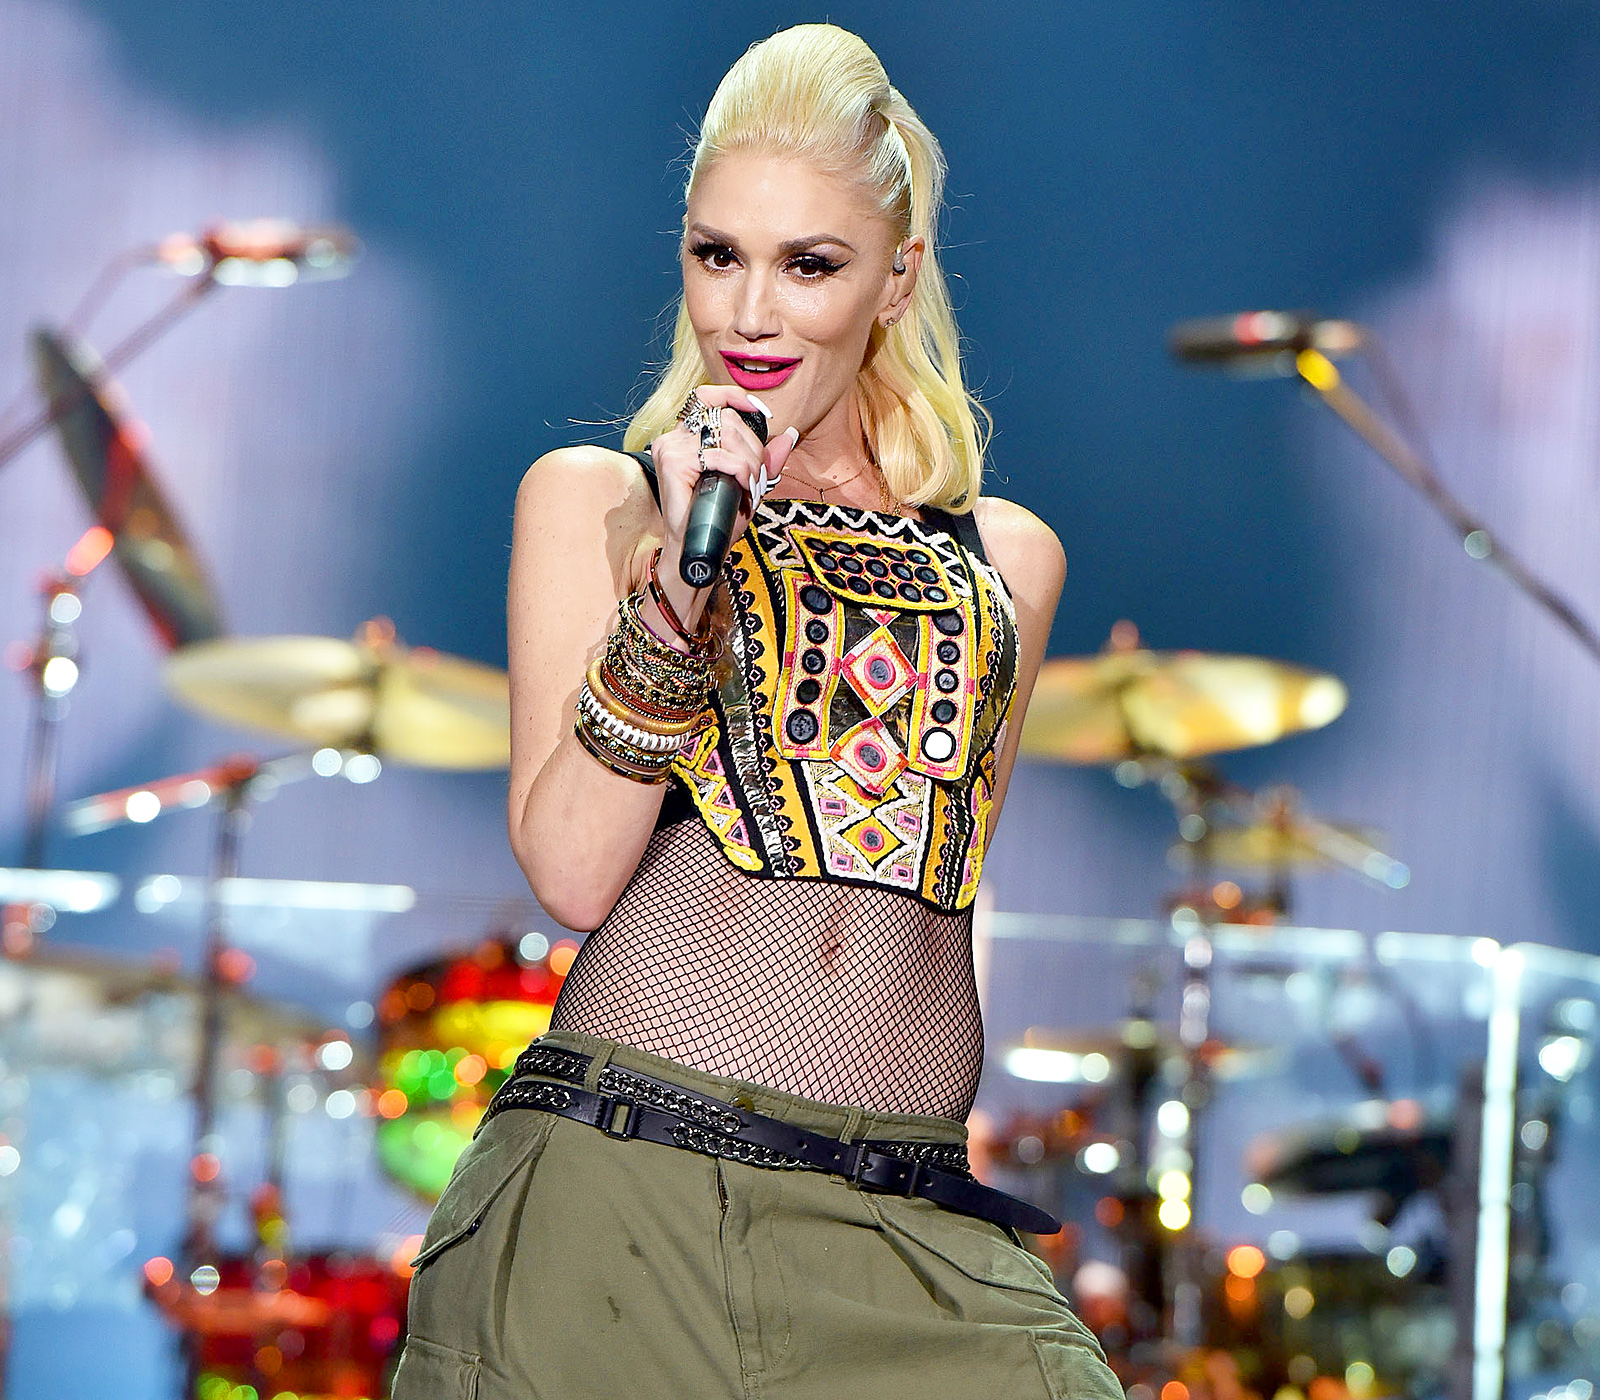 Gwen Stefani Heading to Las Vegas for 'Just a Girl' Residency